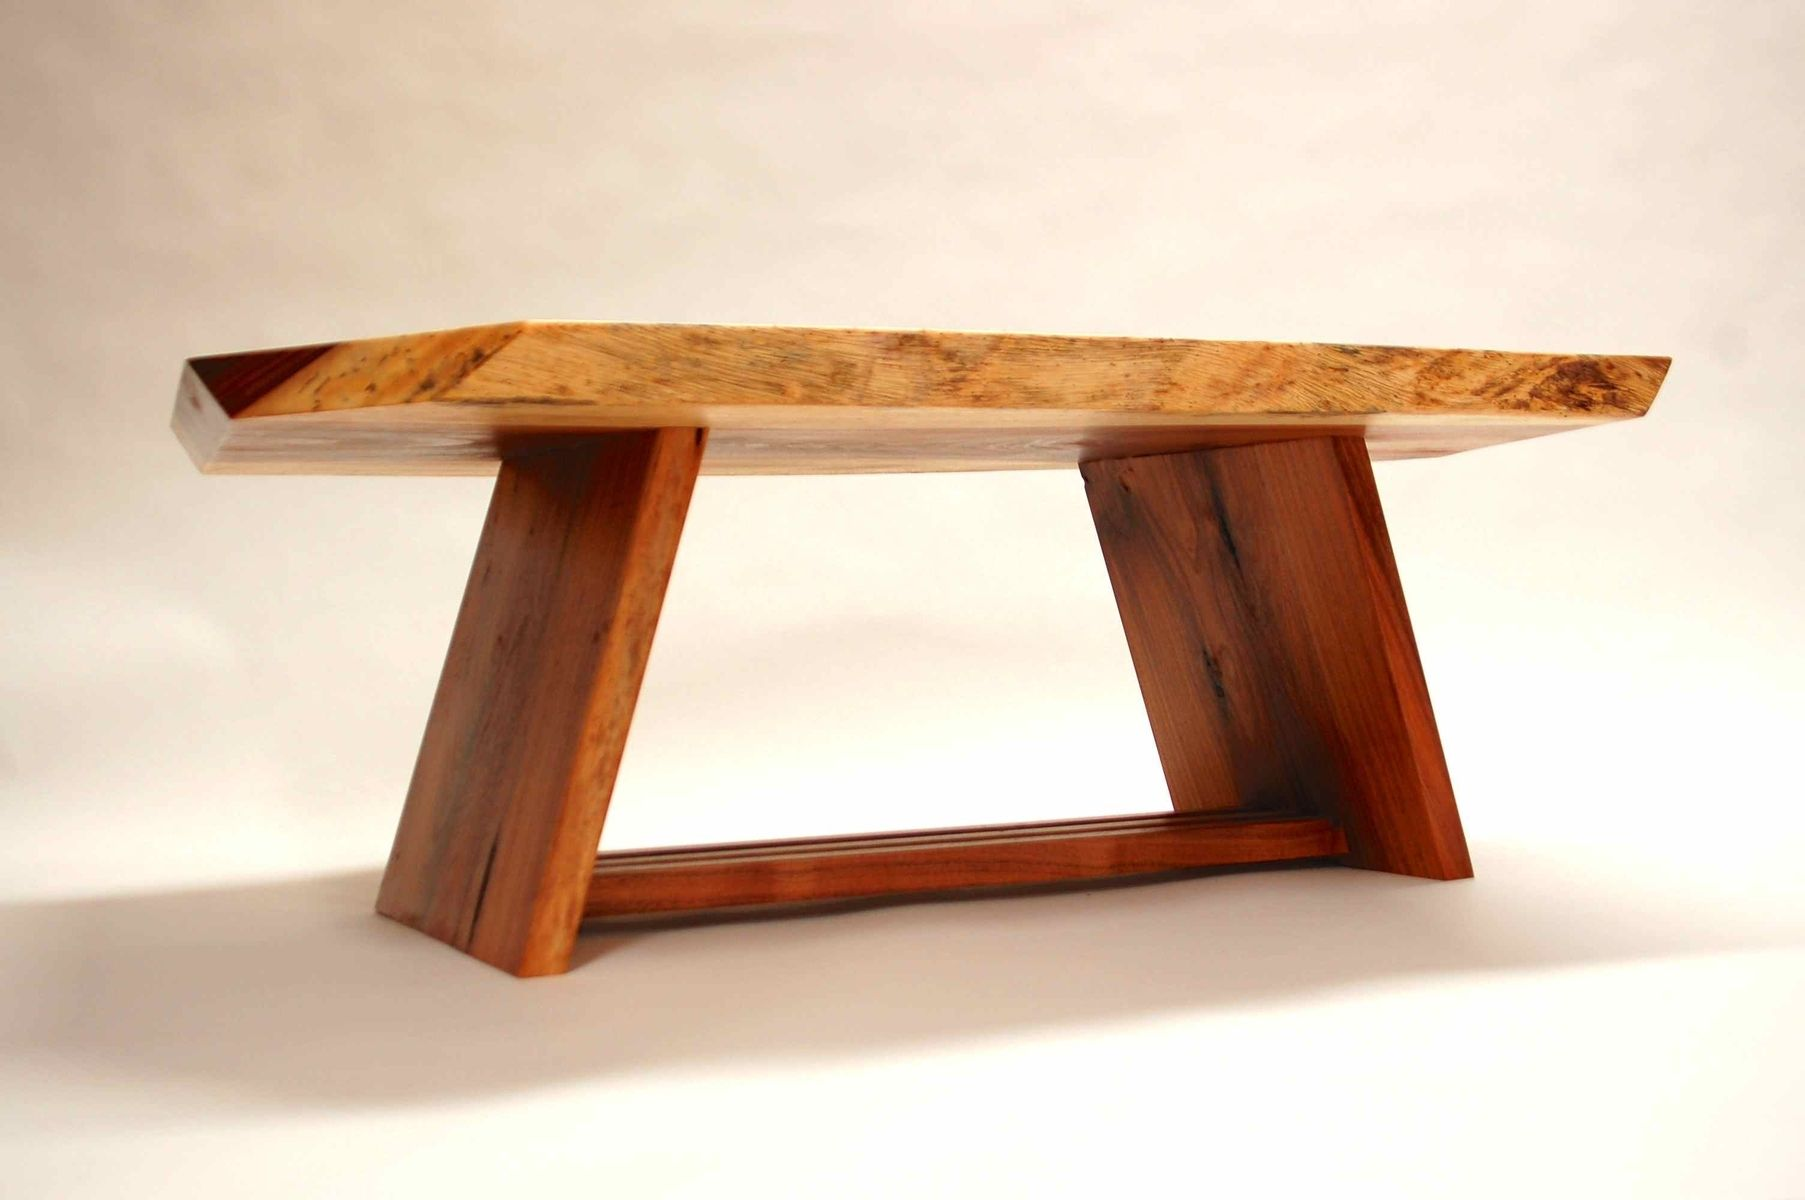 Handmade Acacia Coffee Table By Cb Studios